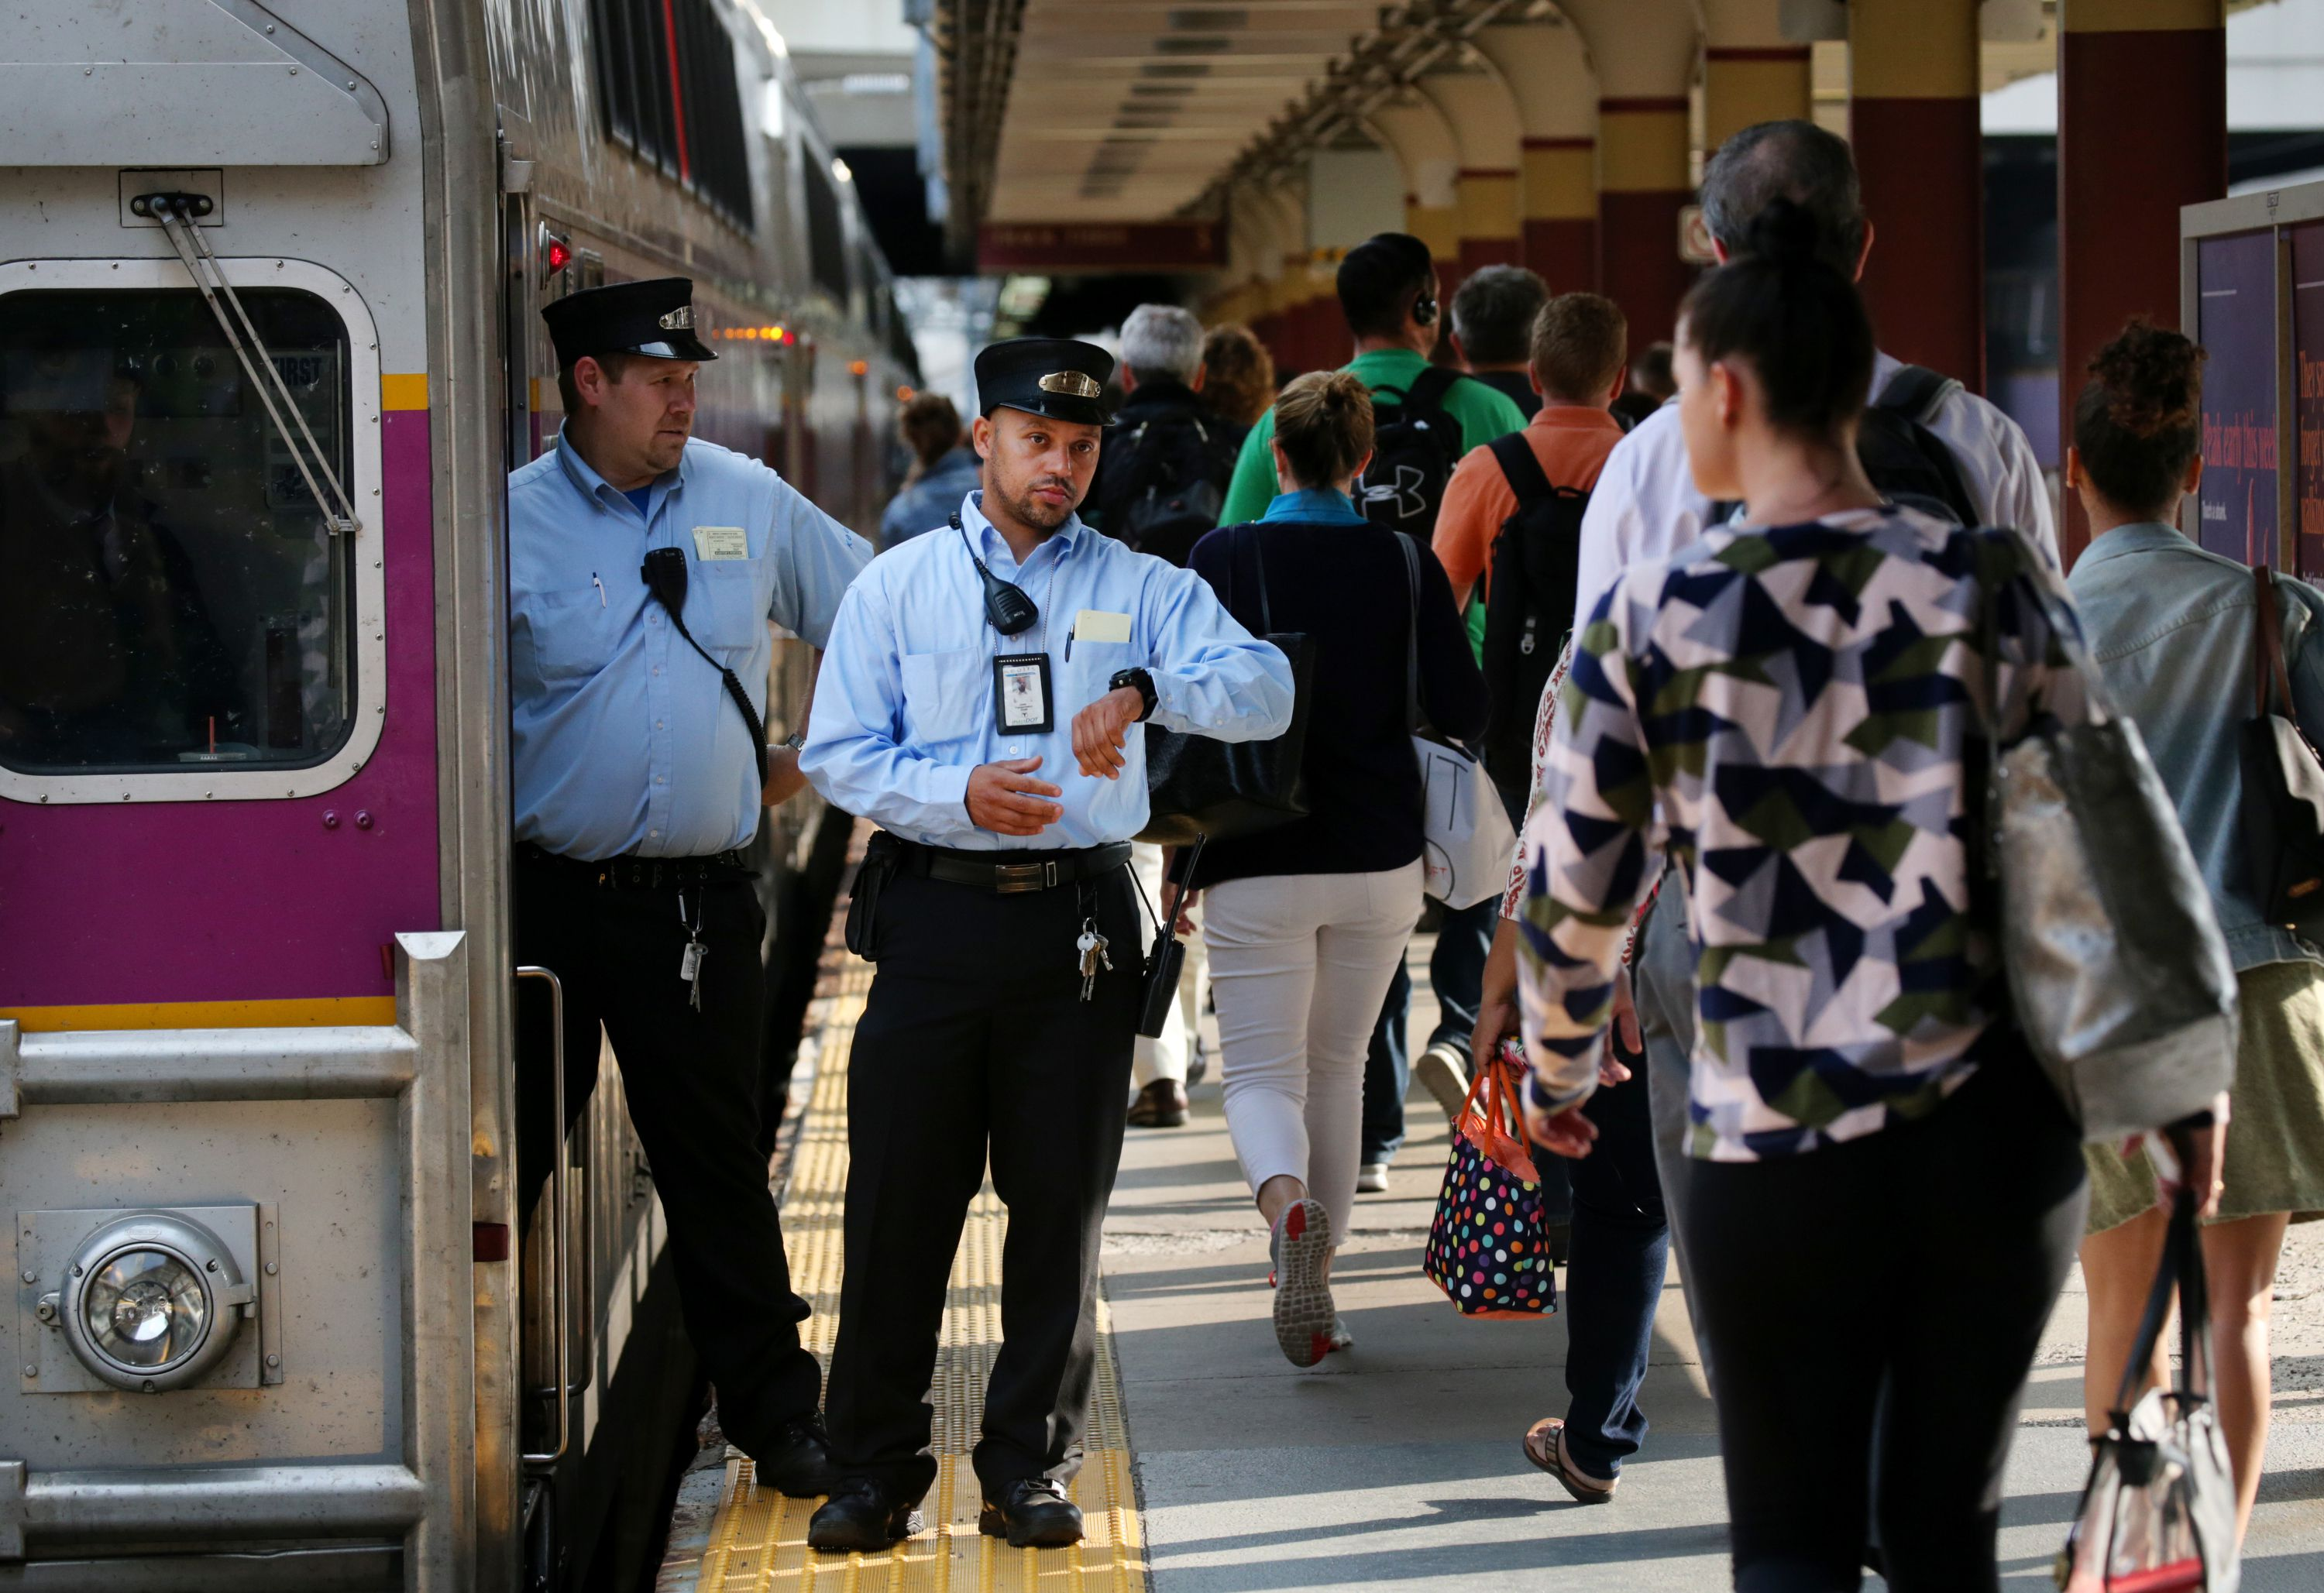 New MBTA fare collection system is delayed - The Boston Globe